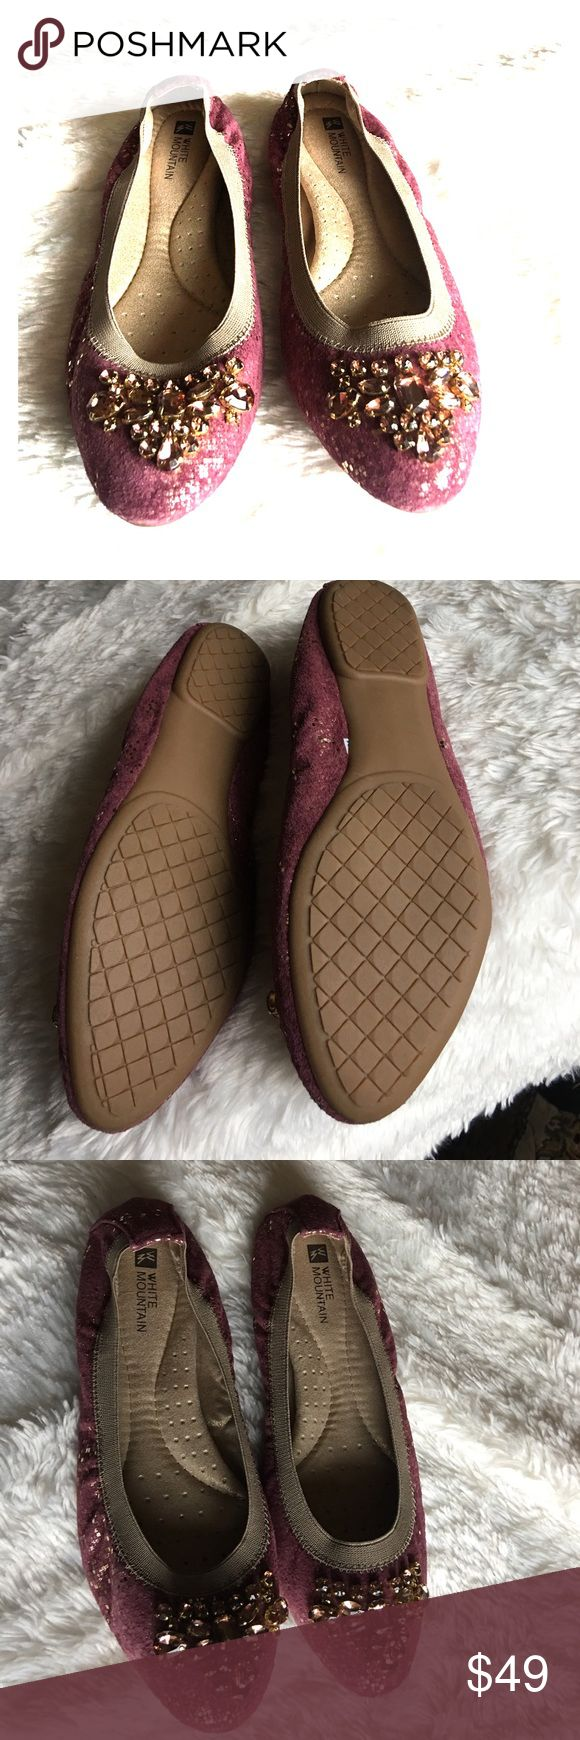 White Mountain flat shoes. Brand new. White Mountain Ballet flat. Maroon with gold shimmer. Bejeweled. Size 7 1/2. Never worn. Padded sole. White Mountain Shoes Flats & Loafers